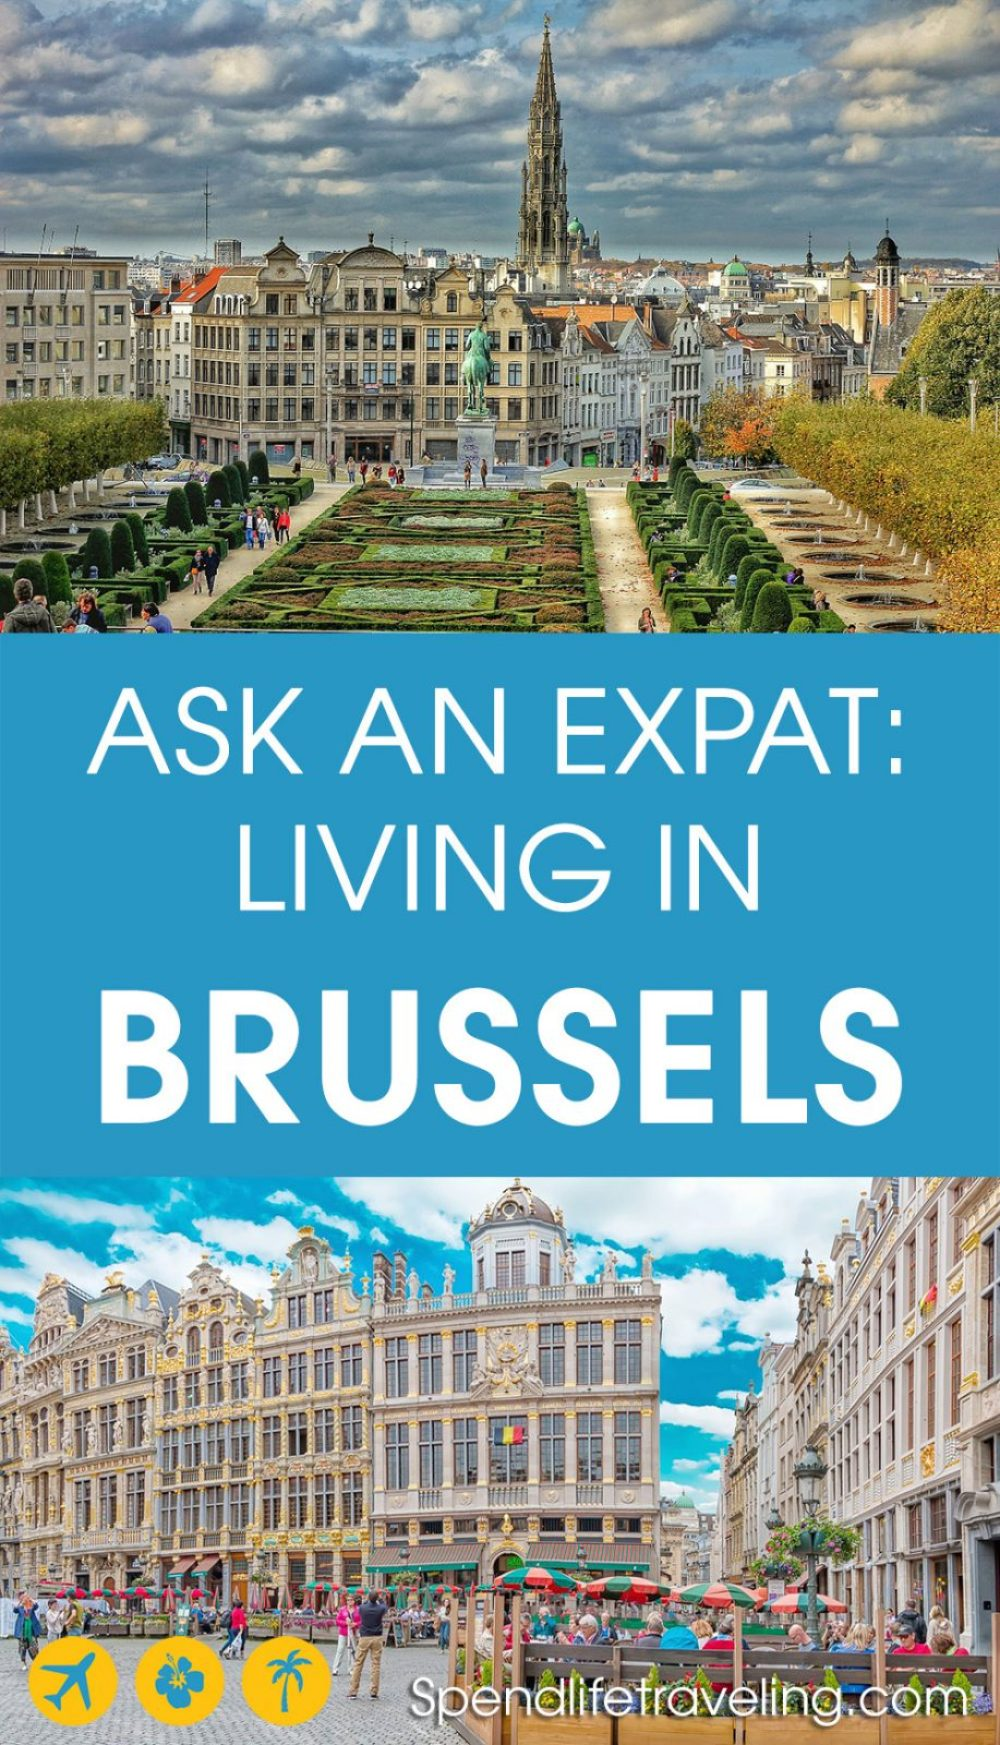 Interview with an expat about moving to and living in Brussels. Are you thinking about moving to Brussels or planning a longer stay there? Then check out this inspiring interview. #brussels #expatlife #lifeabroad #moveabroad #belgium